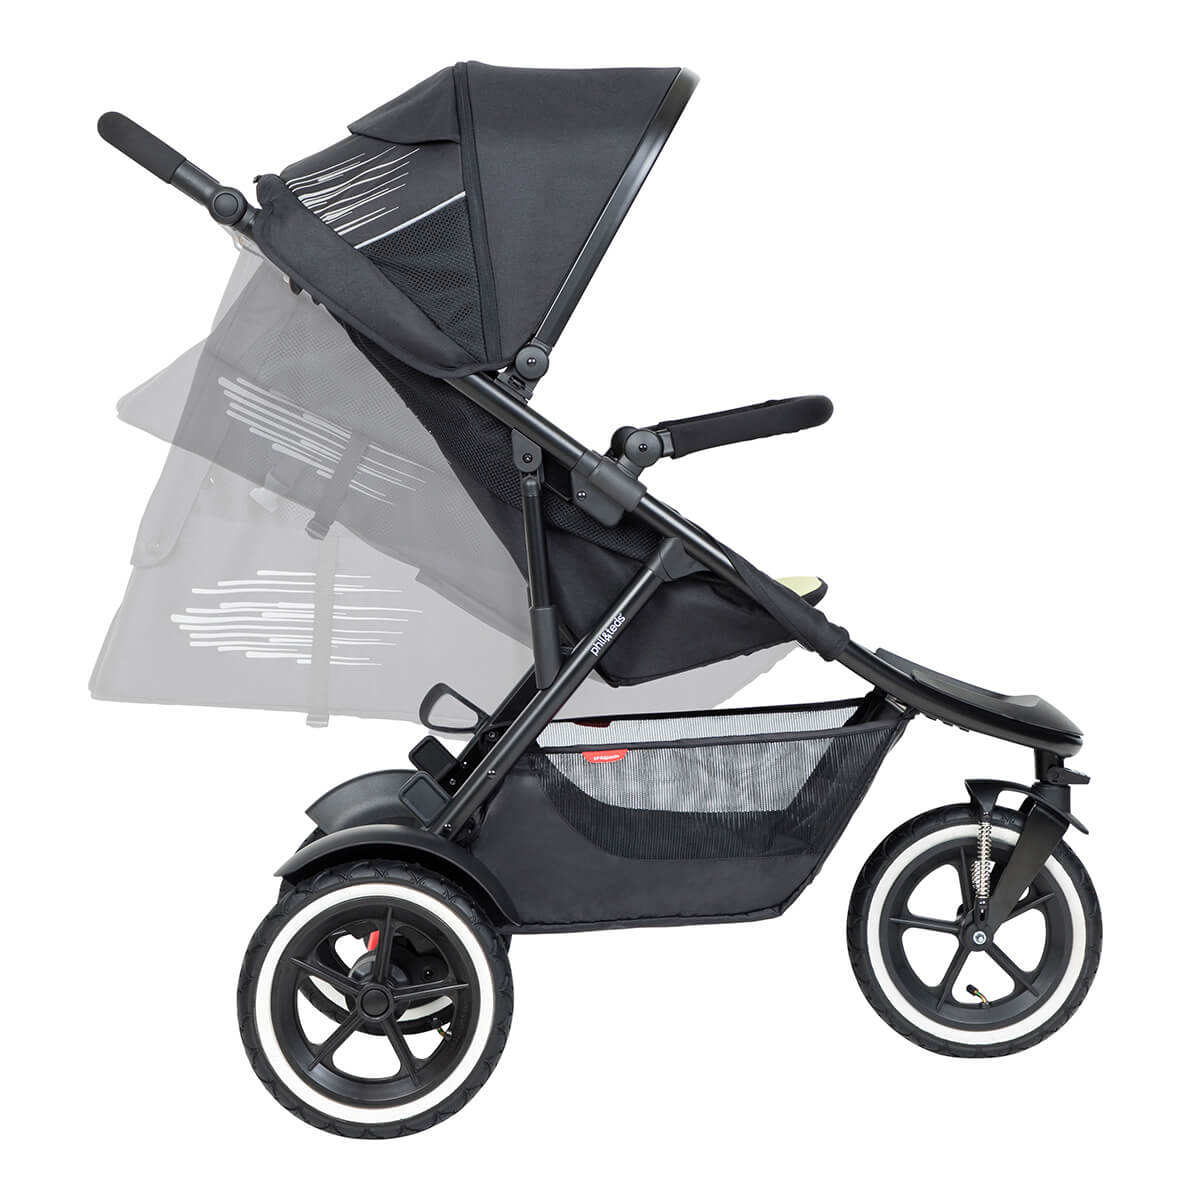 https://cdn.accentuate.io/4363395924021/19118870462517/philteds-sport-buggy-can-recline-in-multiple-angles-including-full-recline-for-newborn-baby-v1626403801303.jpg?1200x1200